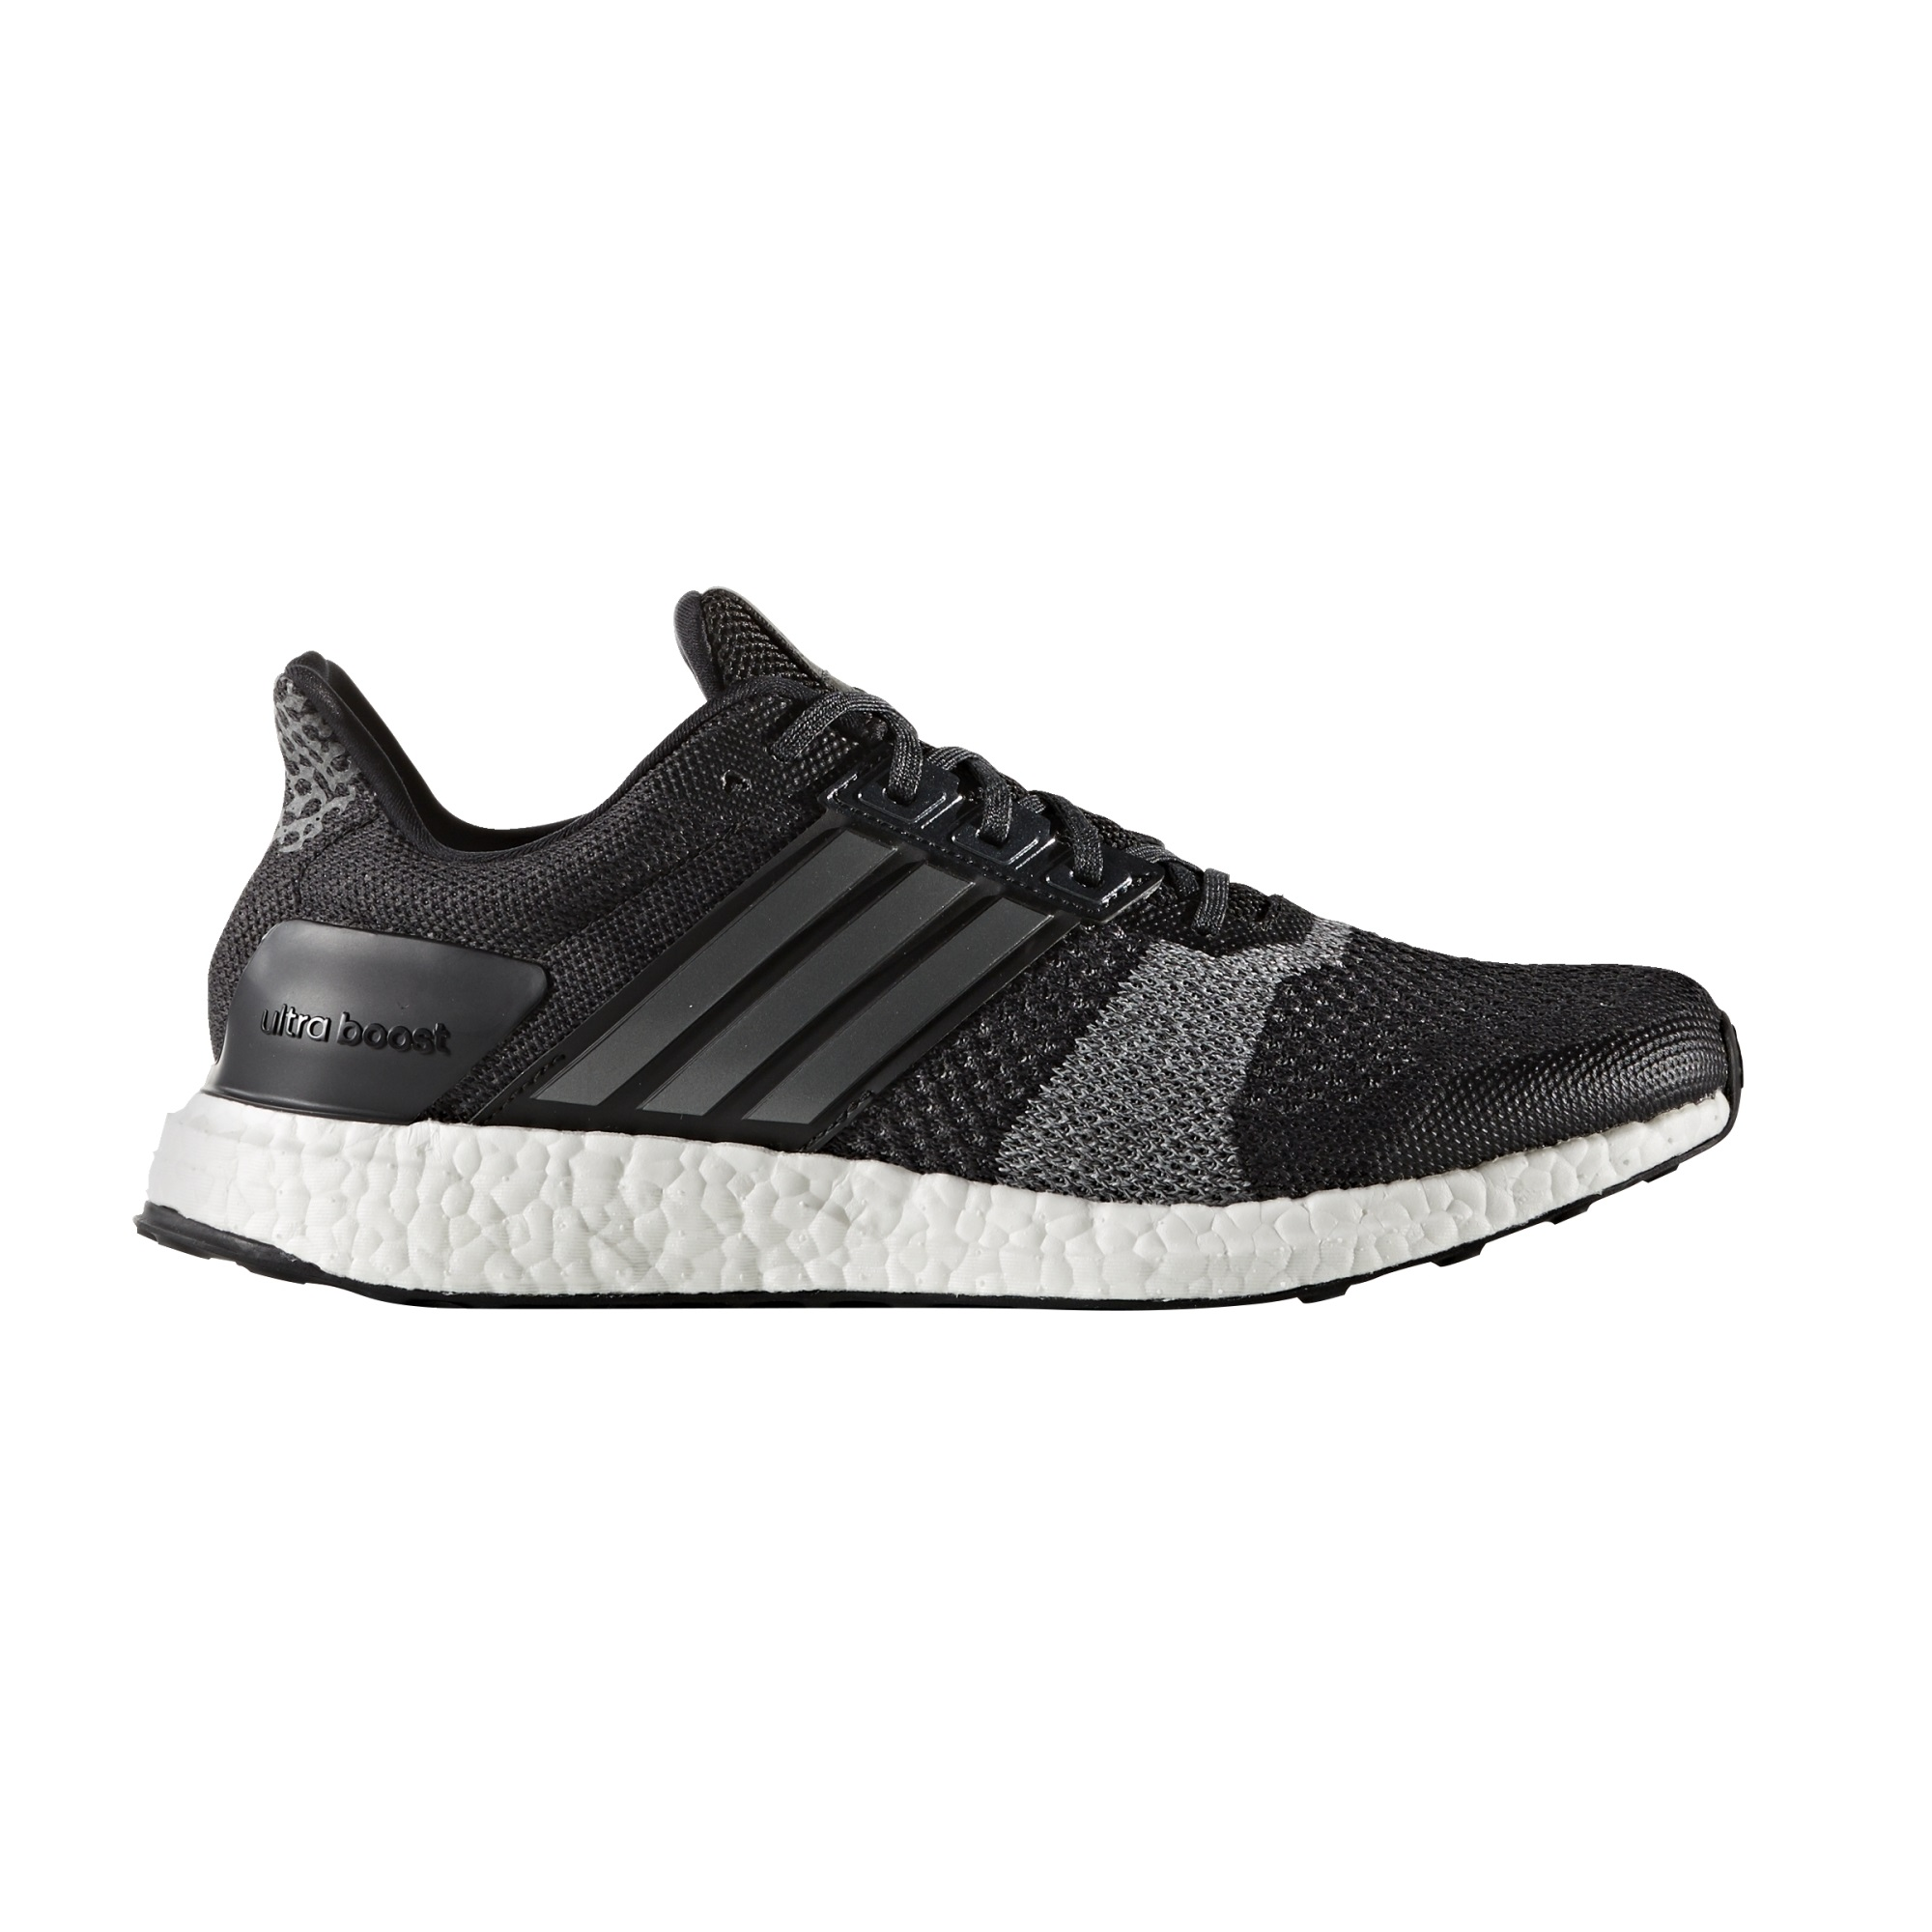 Adidas Ultraboost ST Men s Running Shoes - Black - Alton Sports 55896cd2bfa89